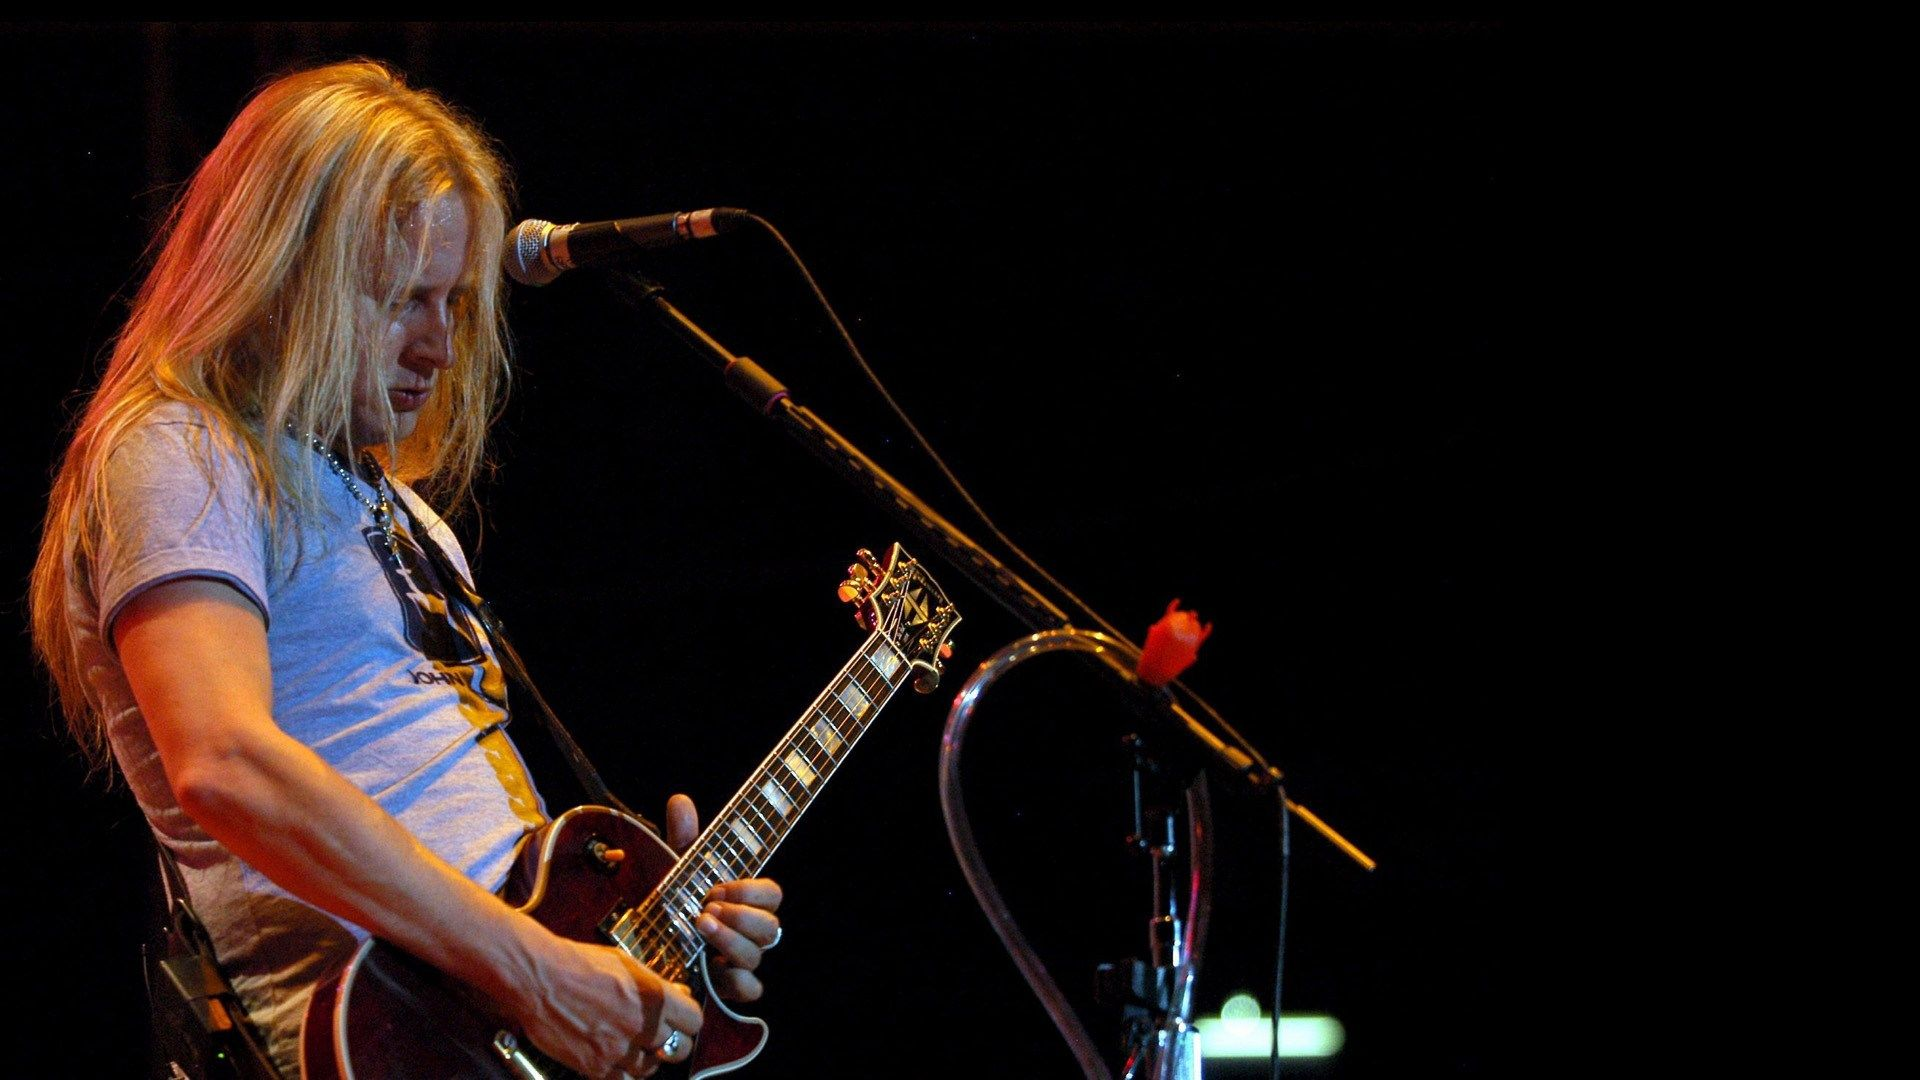 free high resolution wallpaper jerry cantrell scream Jerry 1920x1080